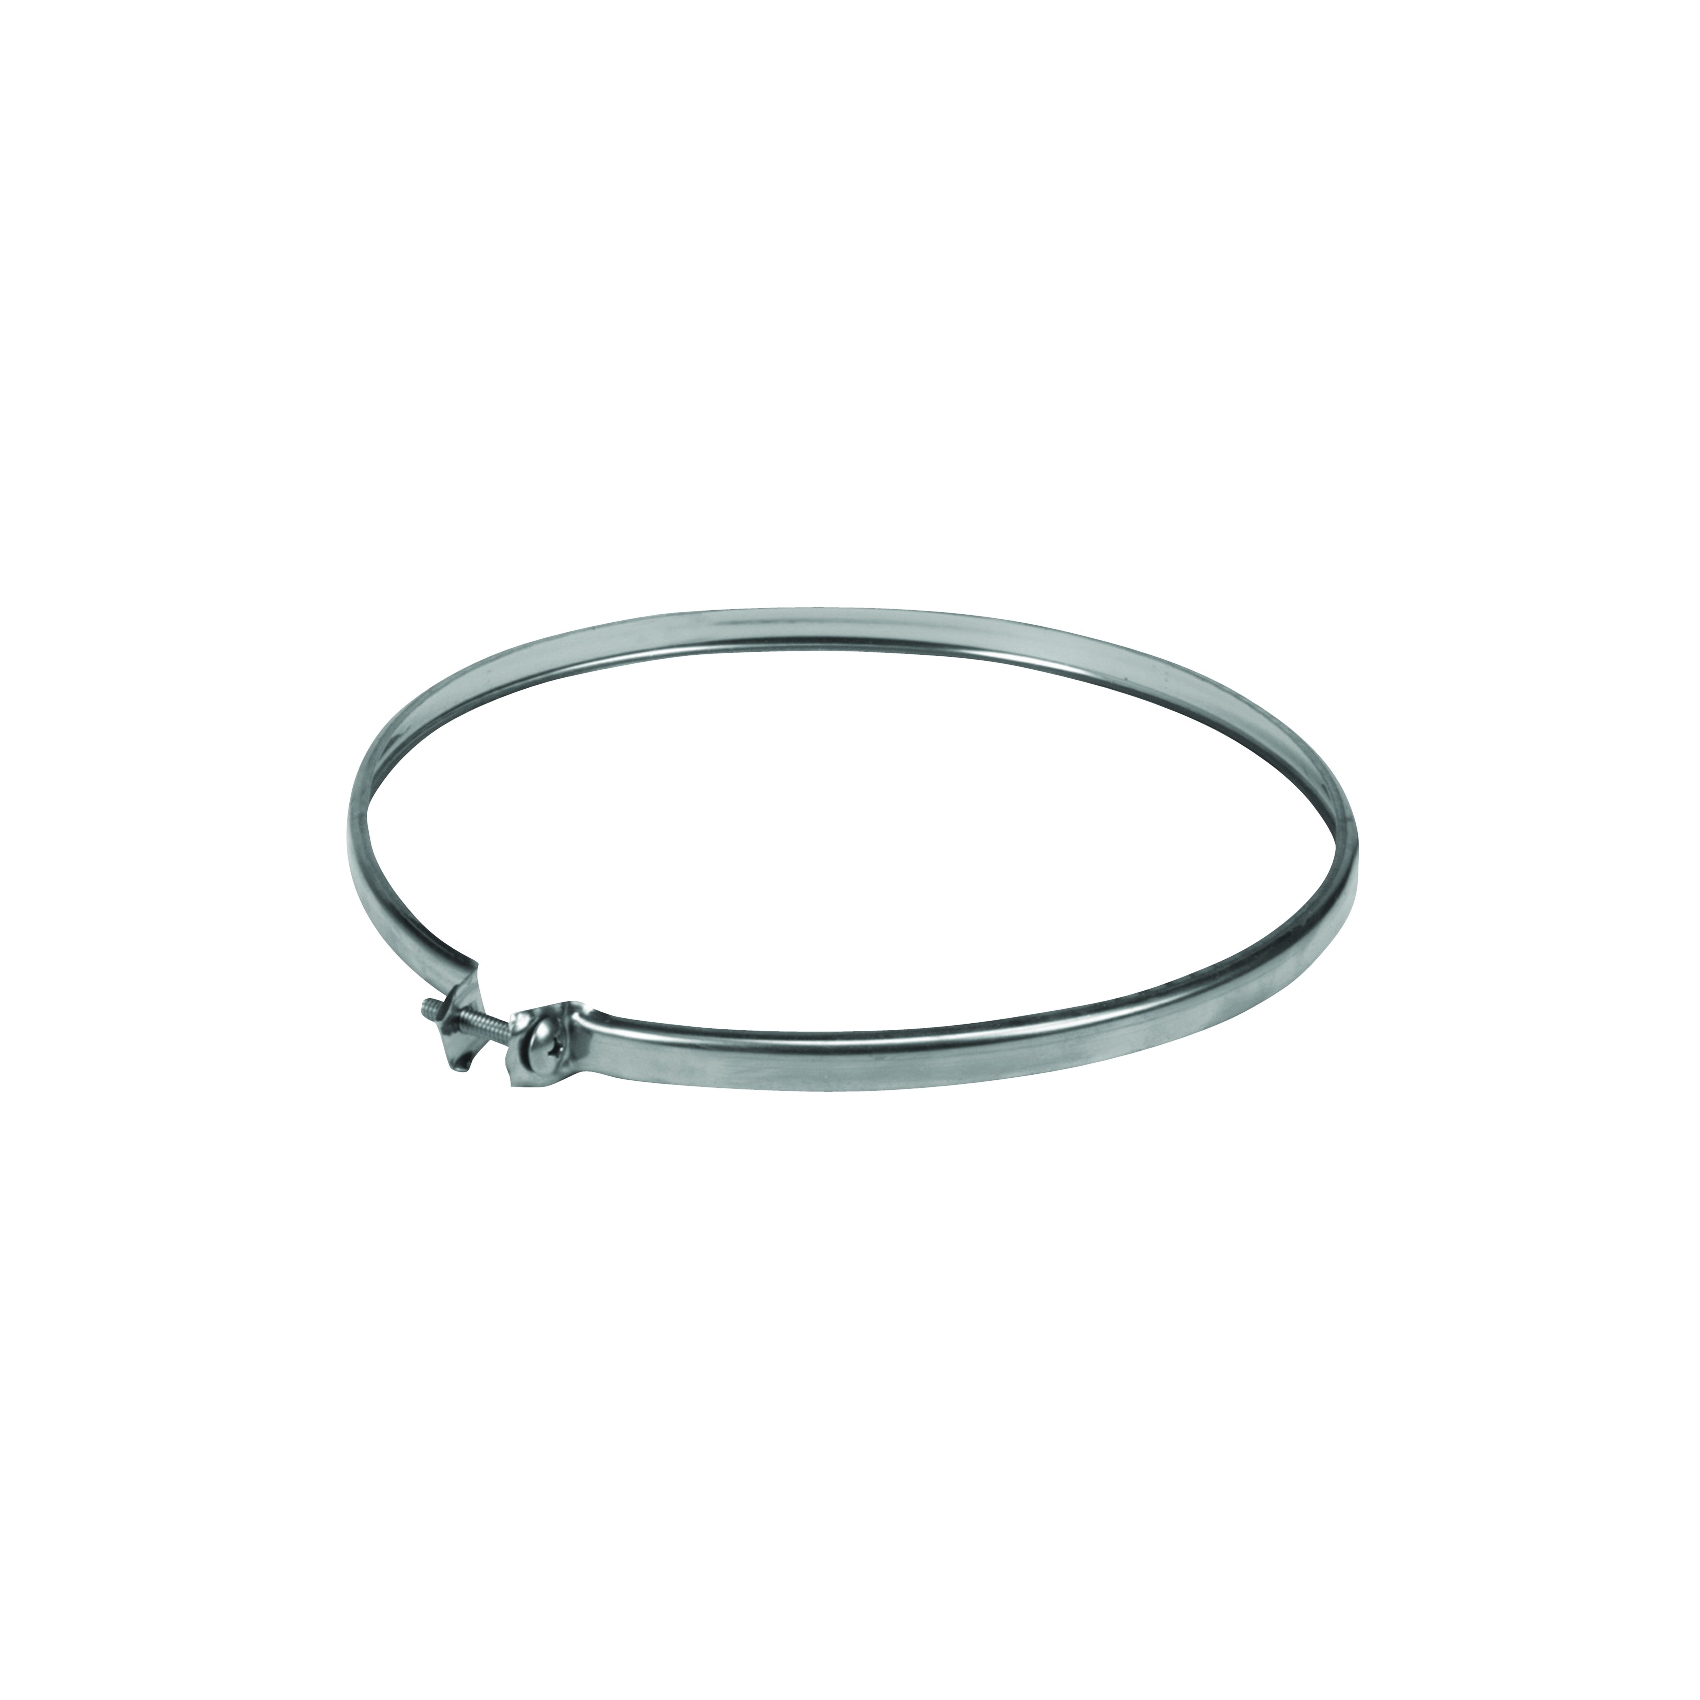 Picture of SELKIRK SURE-TEMP 206450 Locking Band, Stainless Steel